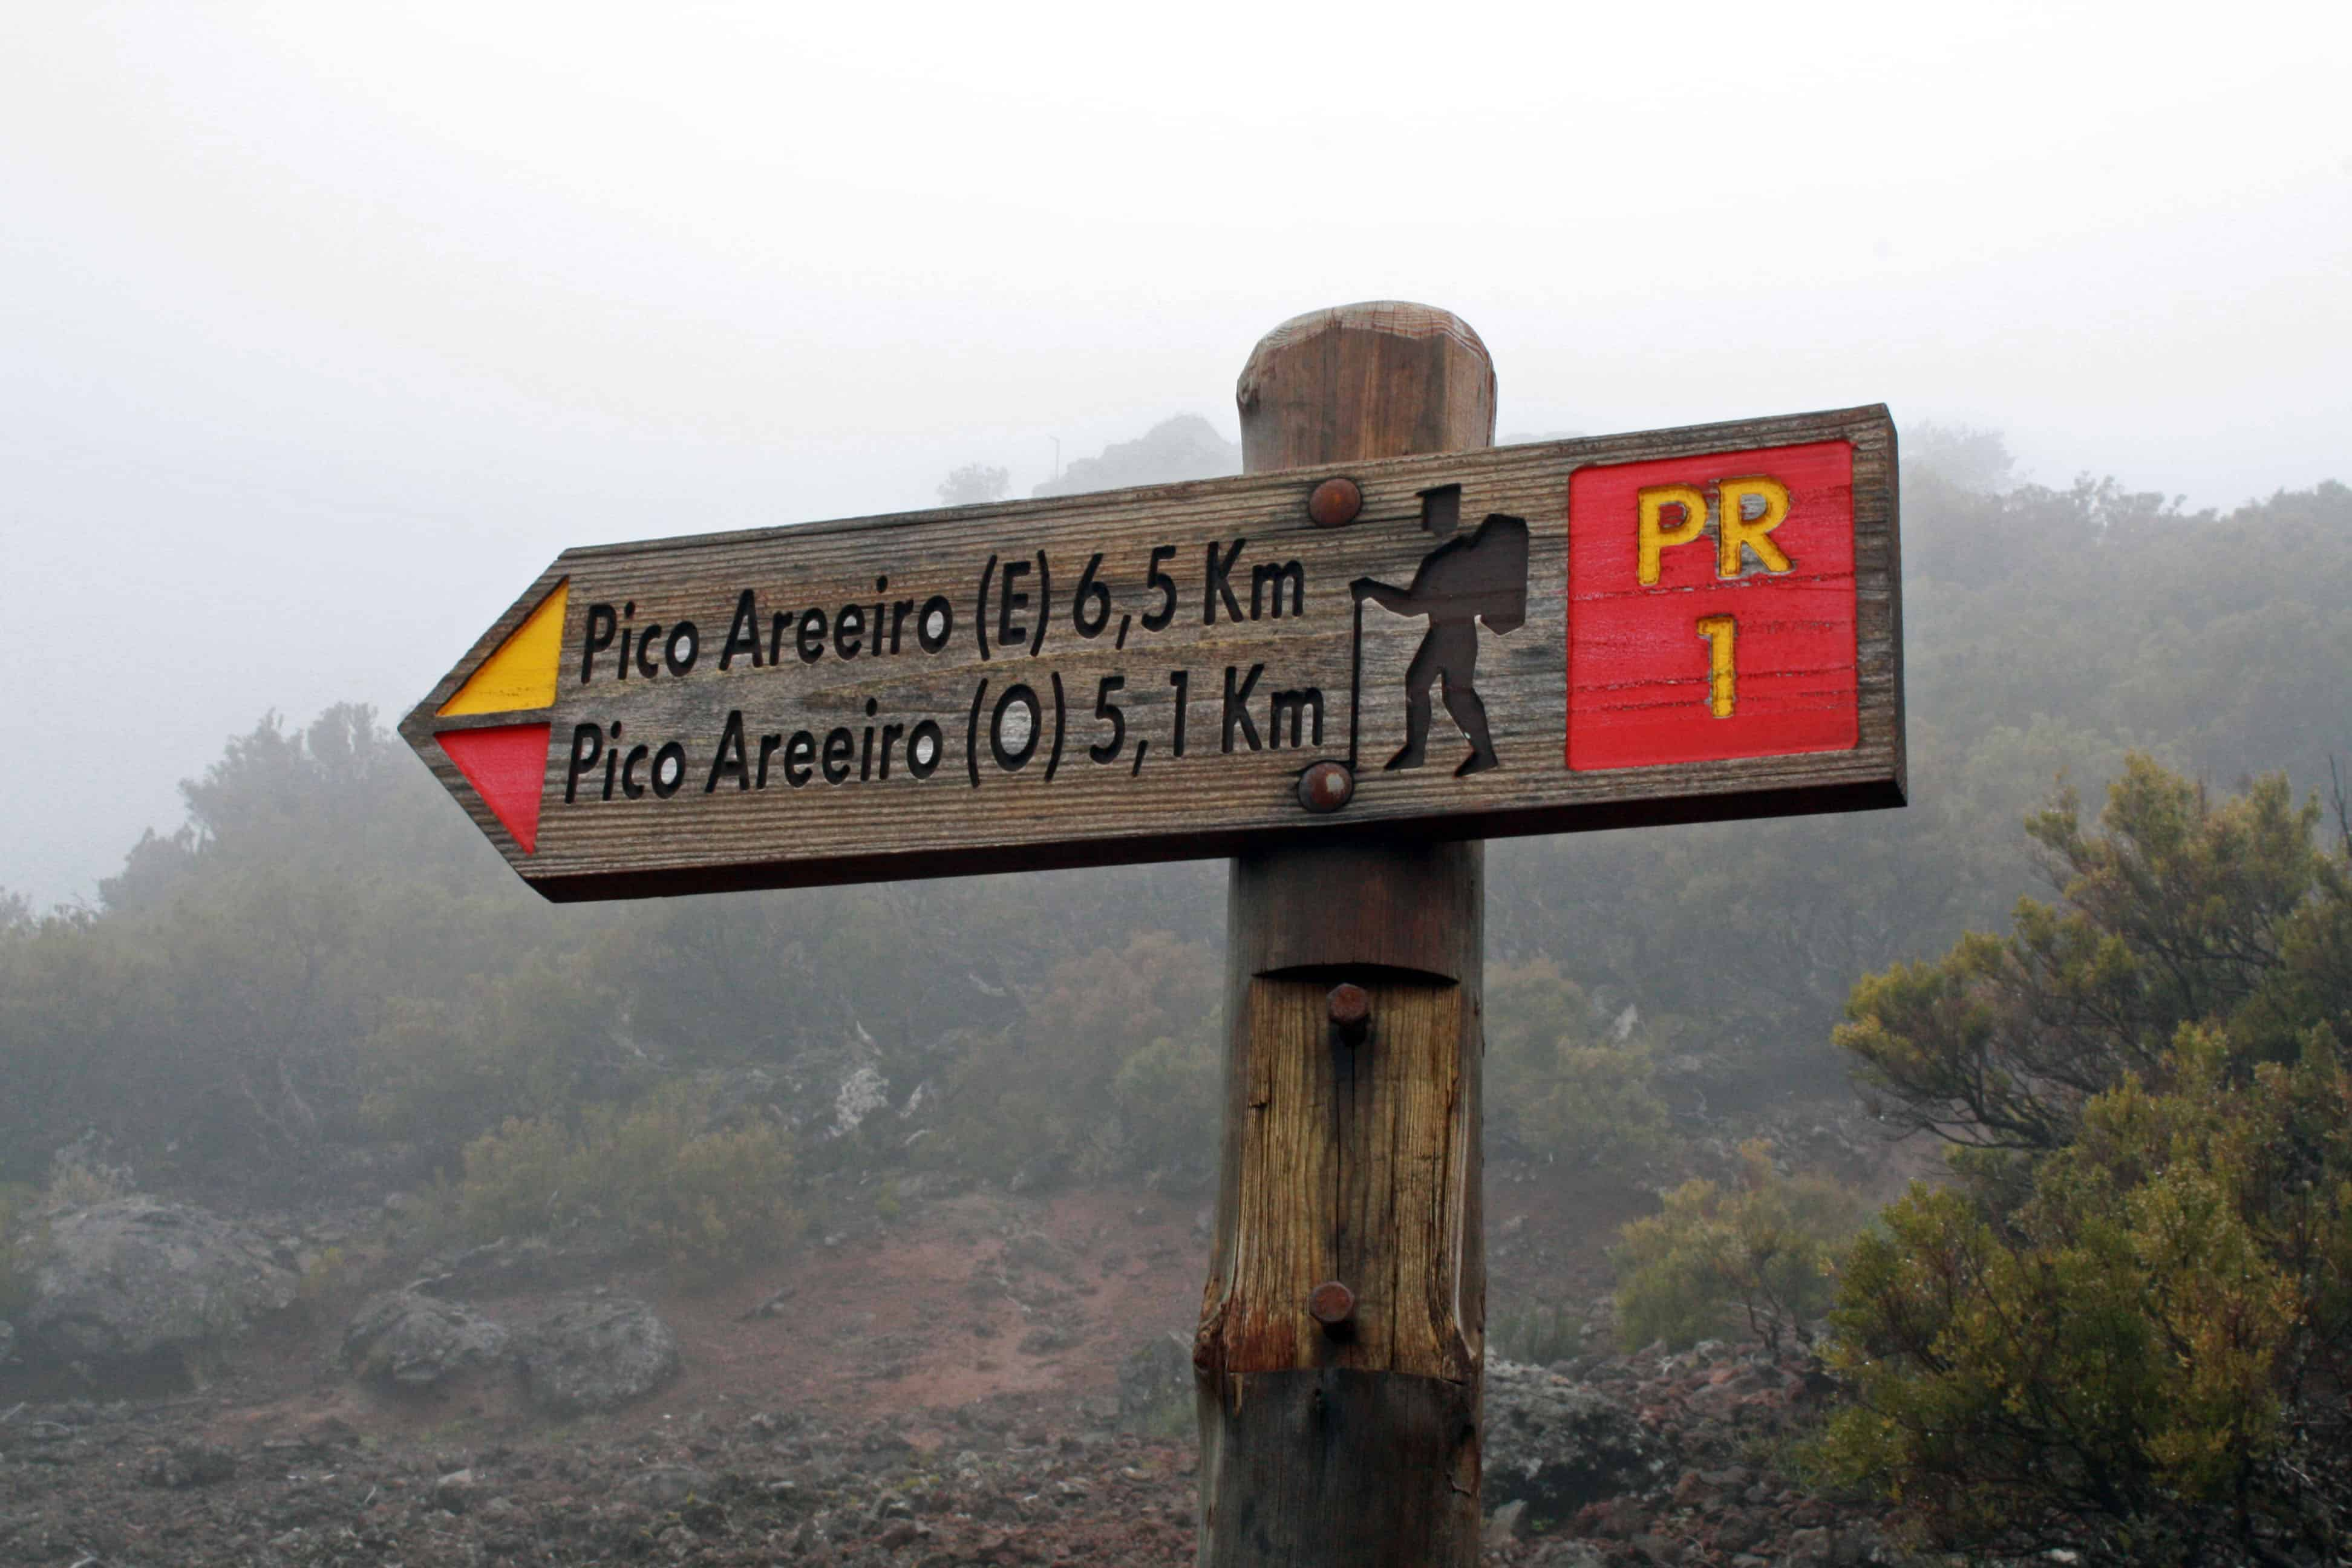 Pico do Arieiro signpost